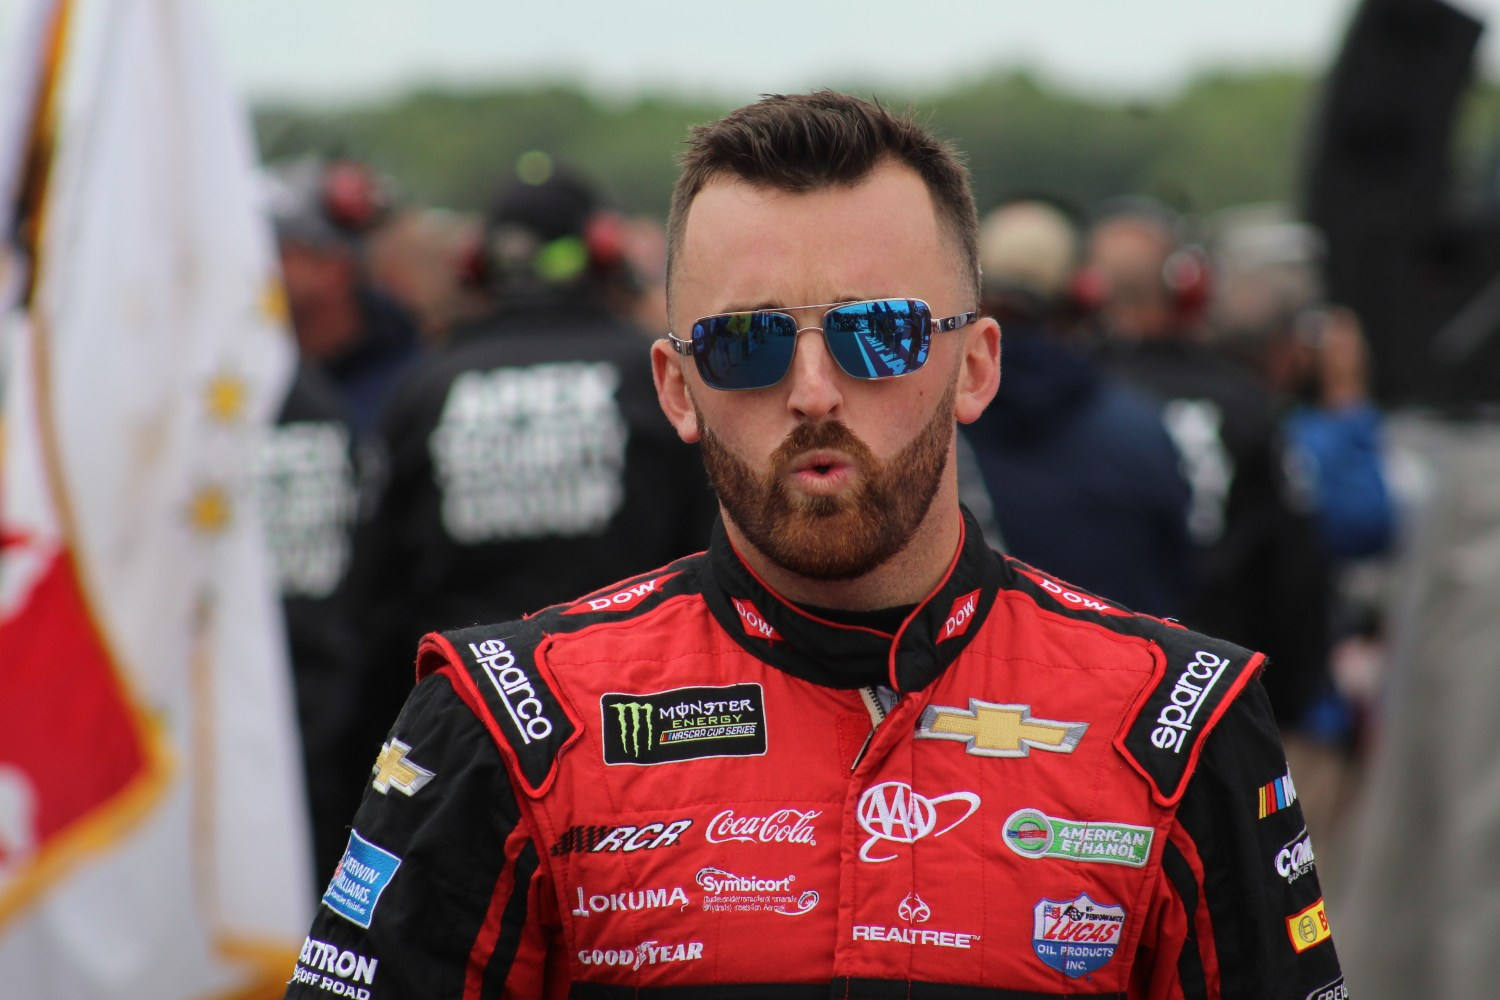 Austin Dillon walks during driver introductions for the 2018 Pocono 400. (Tyler Head | The Racing Experts)